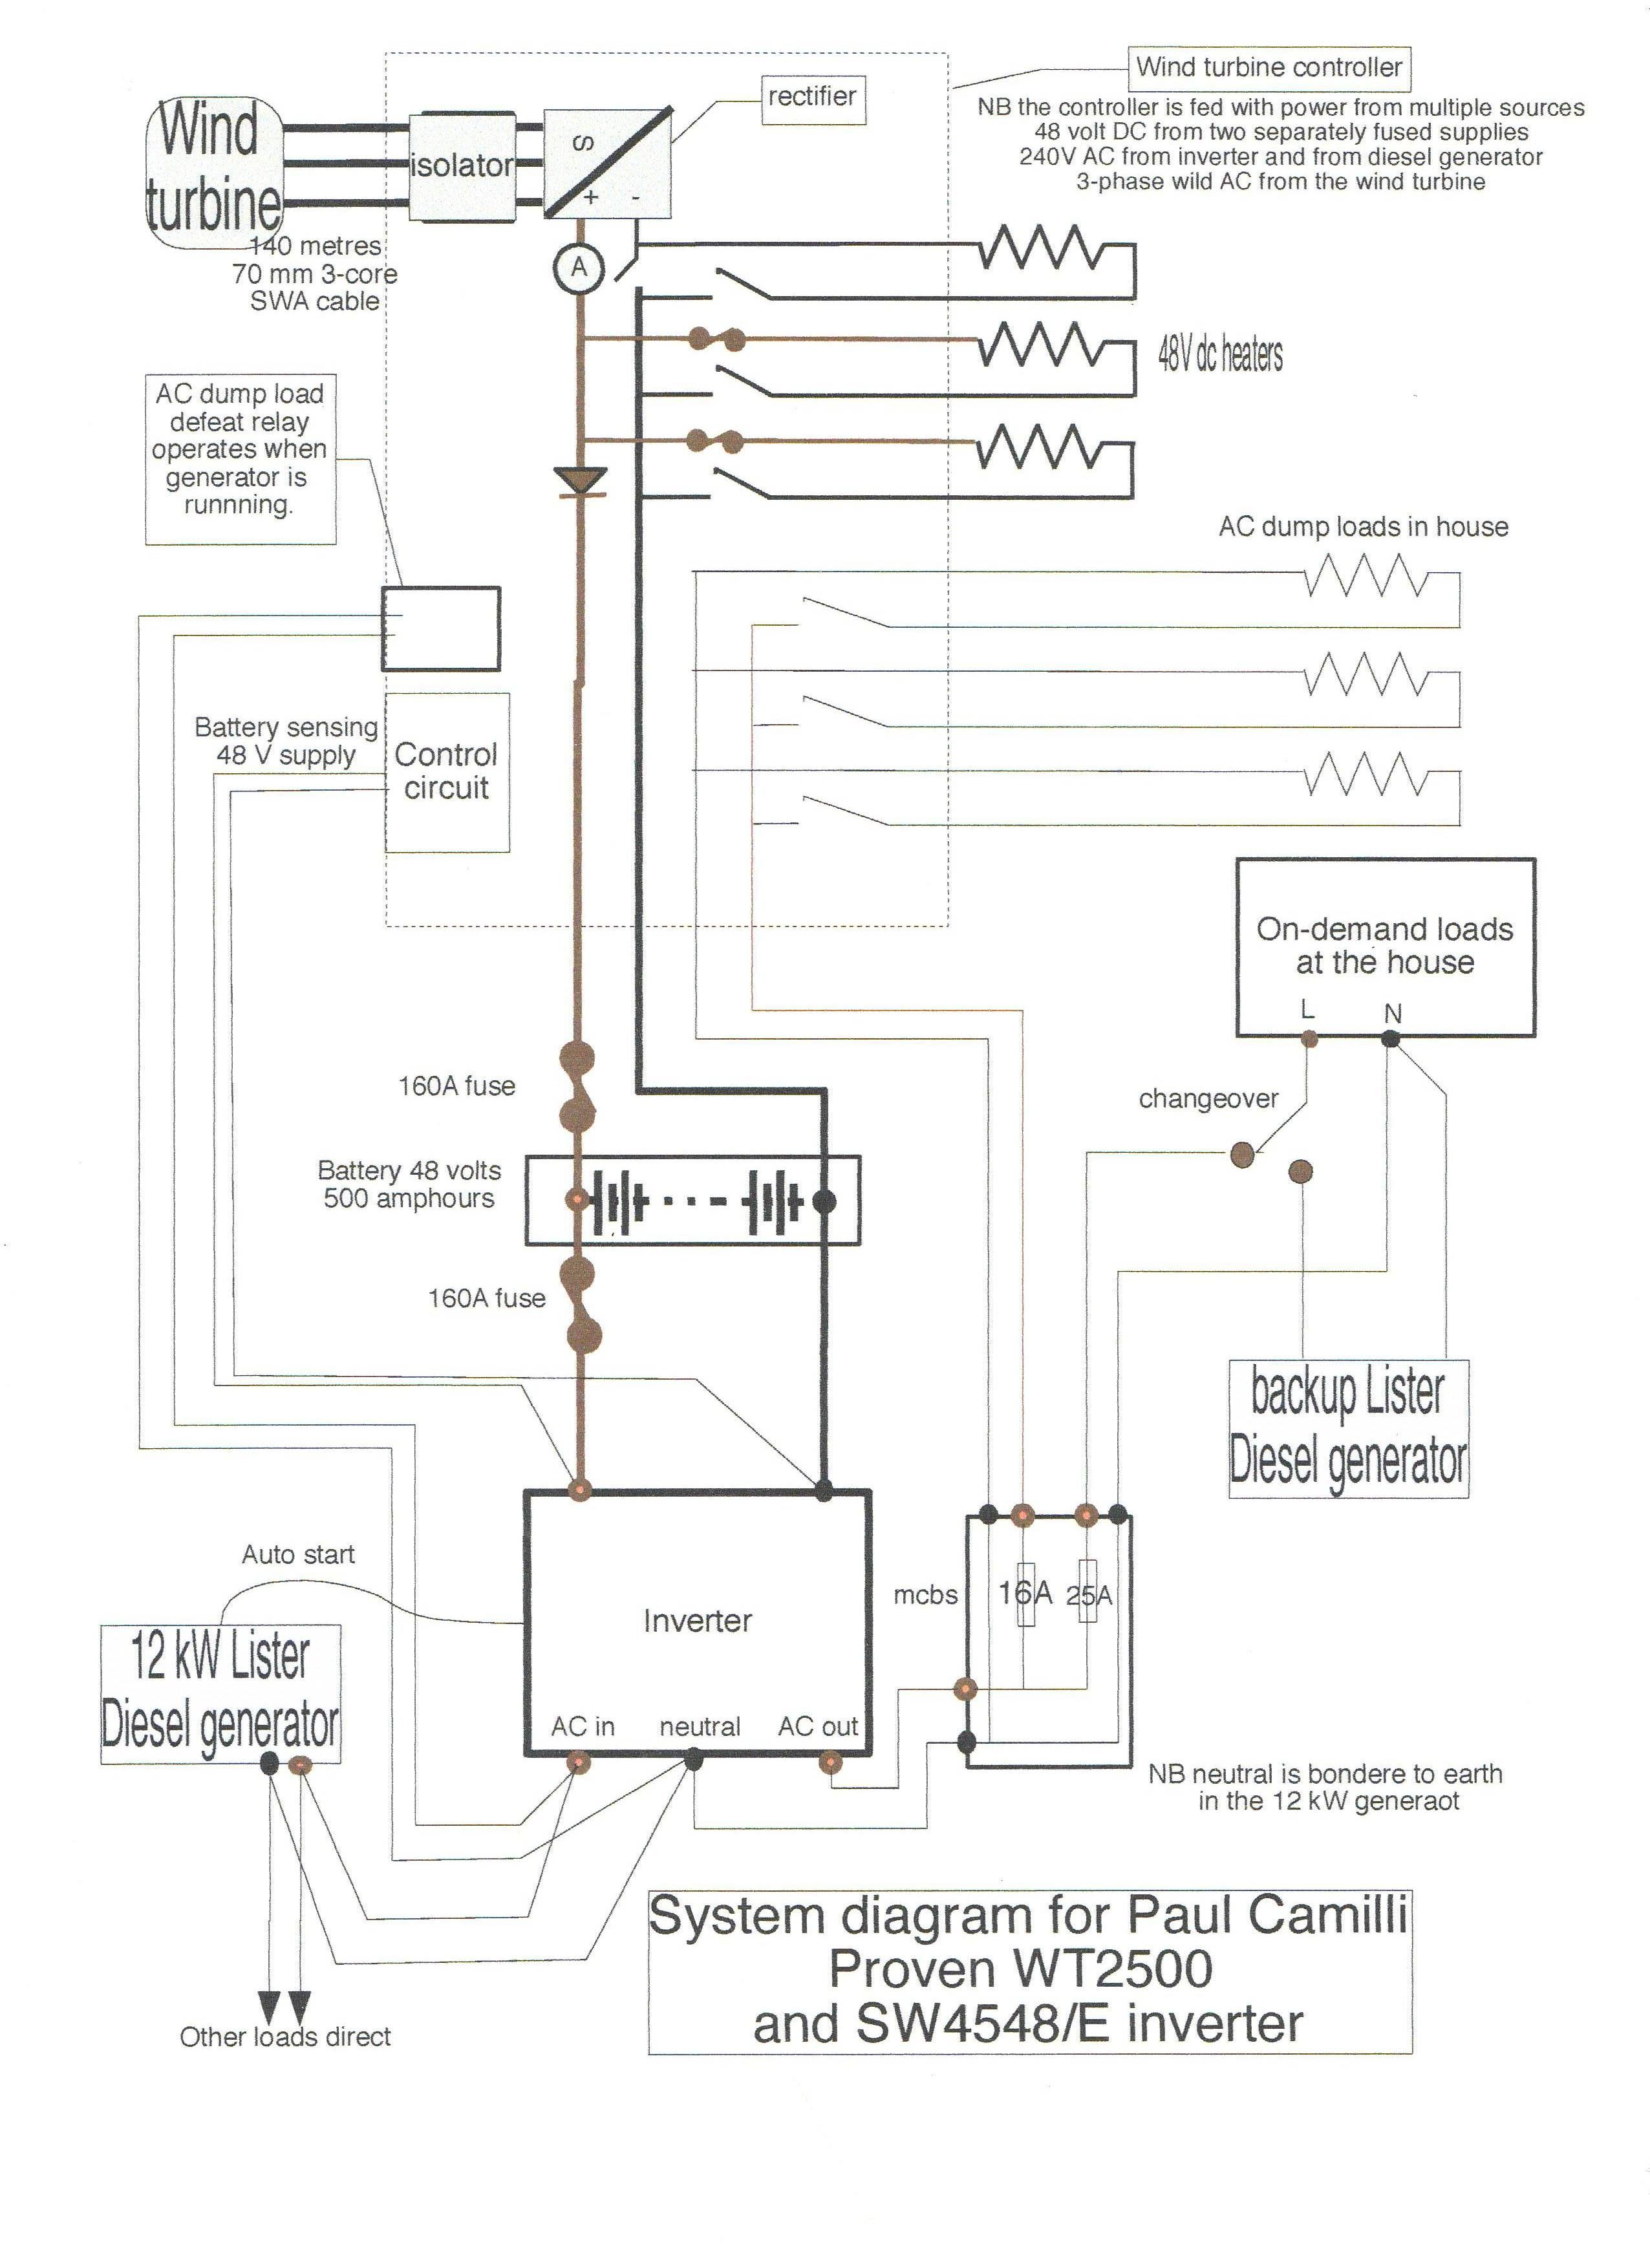 wind turbine wiring diagram homesteading pinterest wind rh pinterest com wind turbine blades wind turbine diagram [ 2552 x 3508 Pixel ]